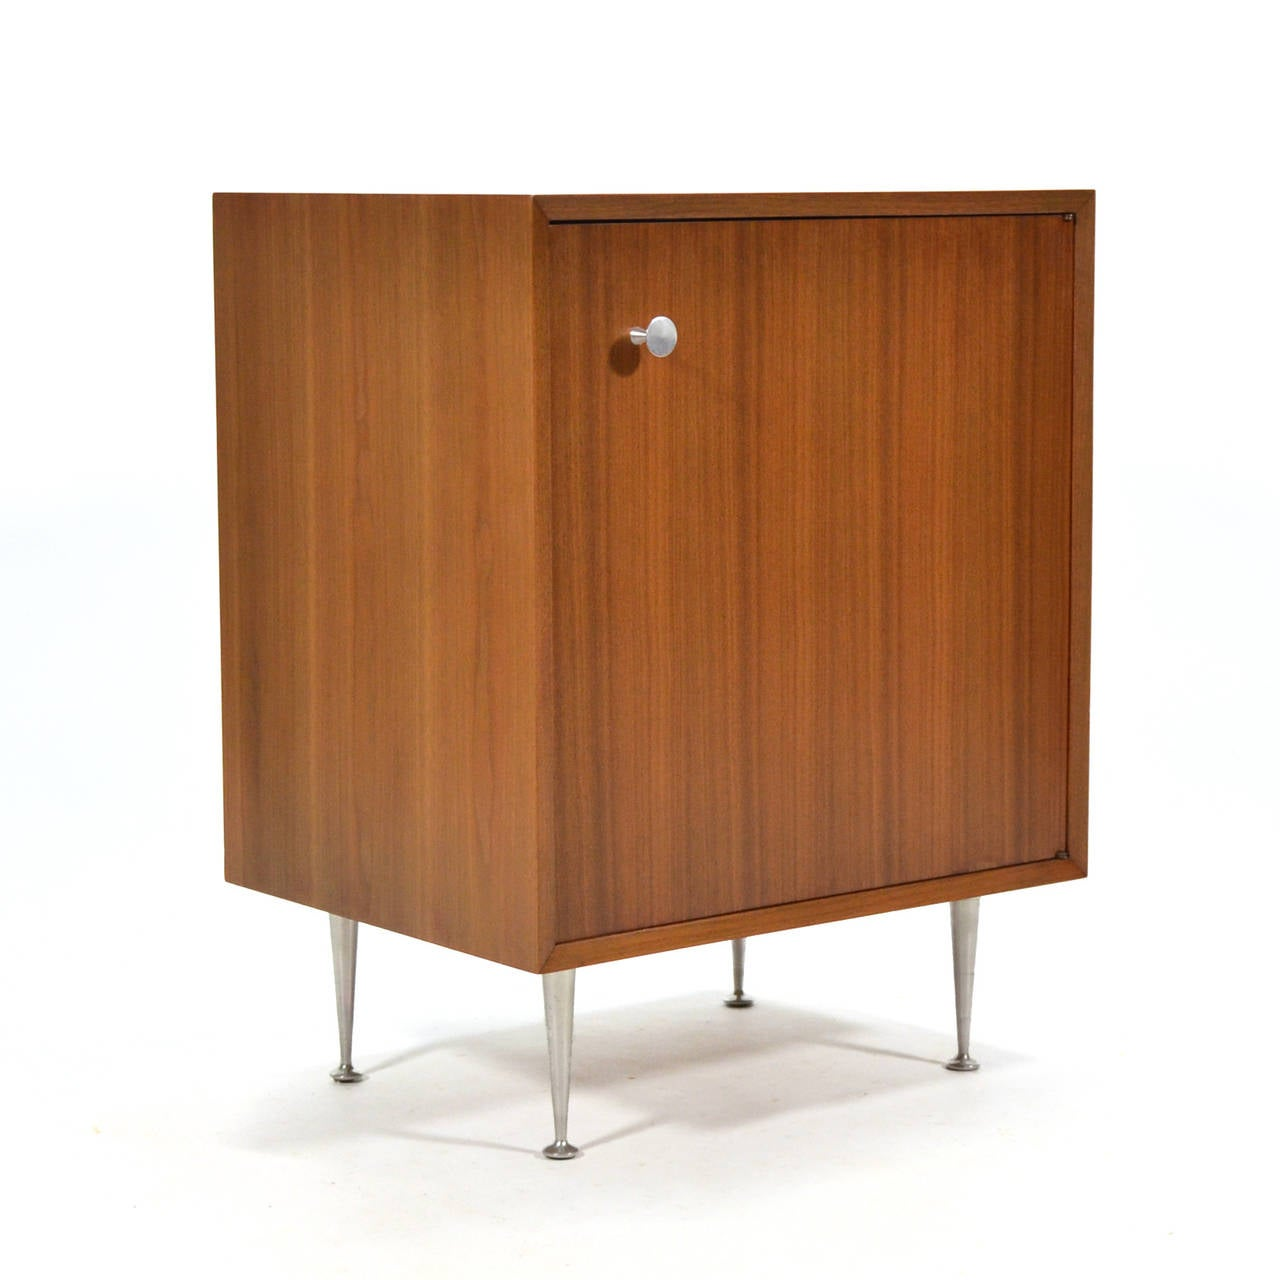 This handsome little cabinet has a terrific scale, making it the perfect occasional piece. Herman Miller offered a variety of legs and pulls for the case goods designed by Nelson. This model 4702 cabinet is from the basic cabinet series, but it has